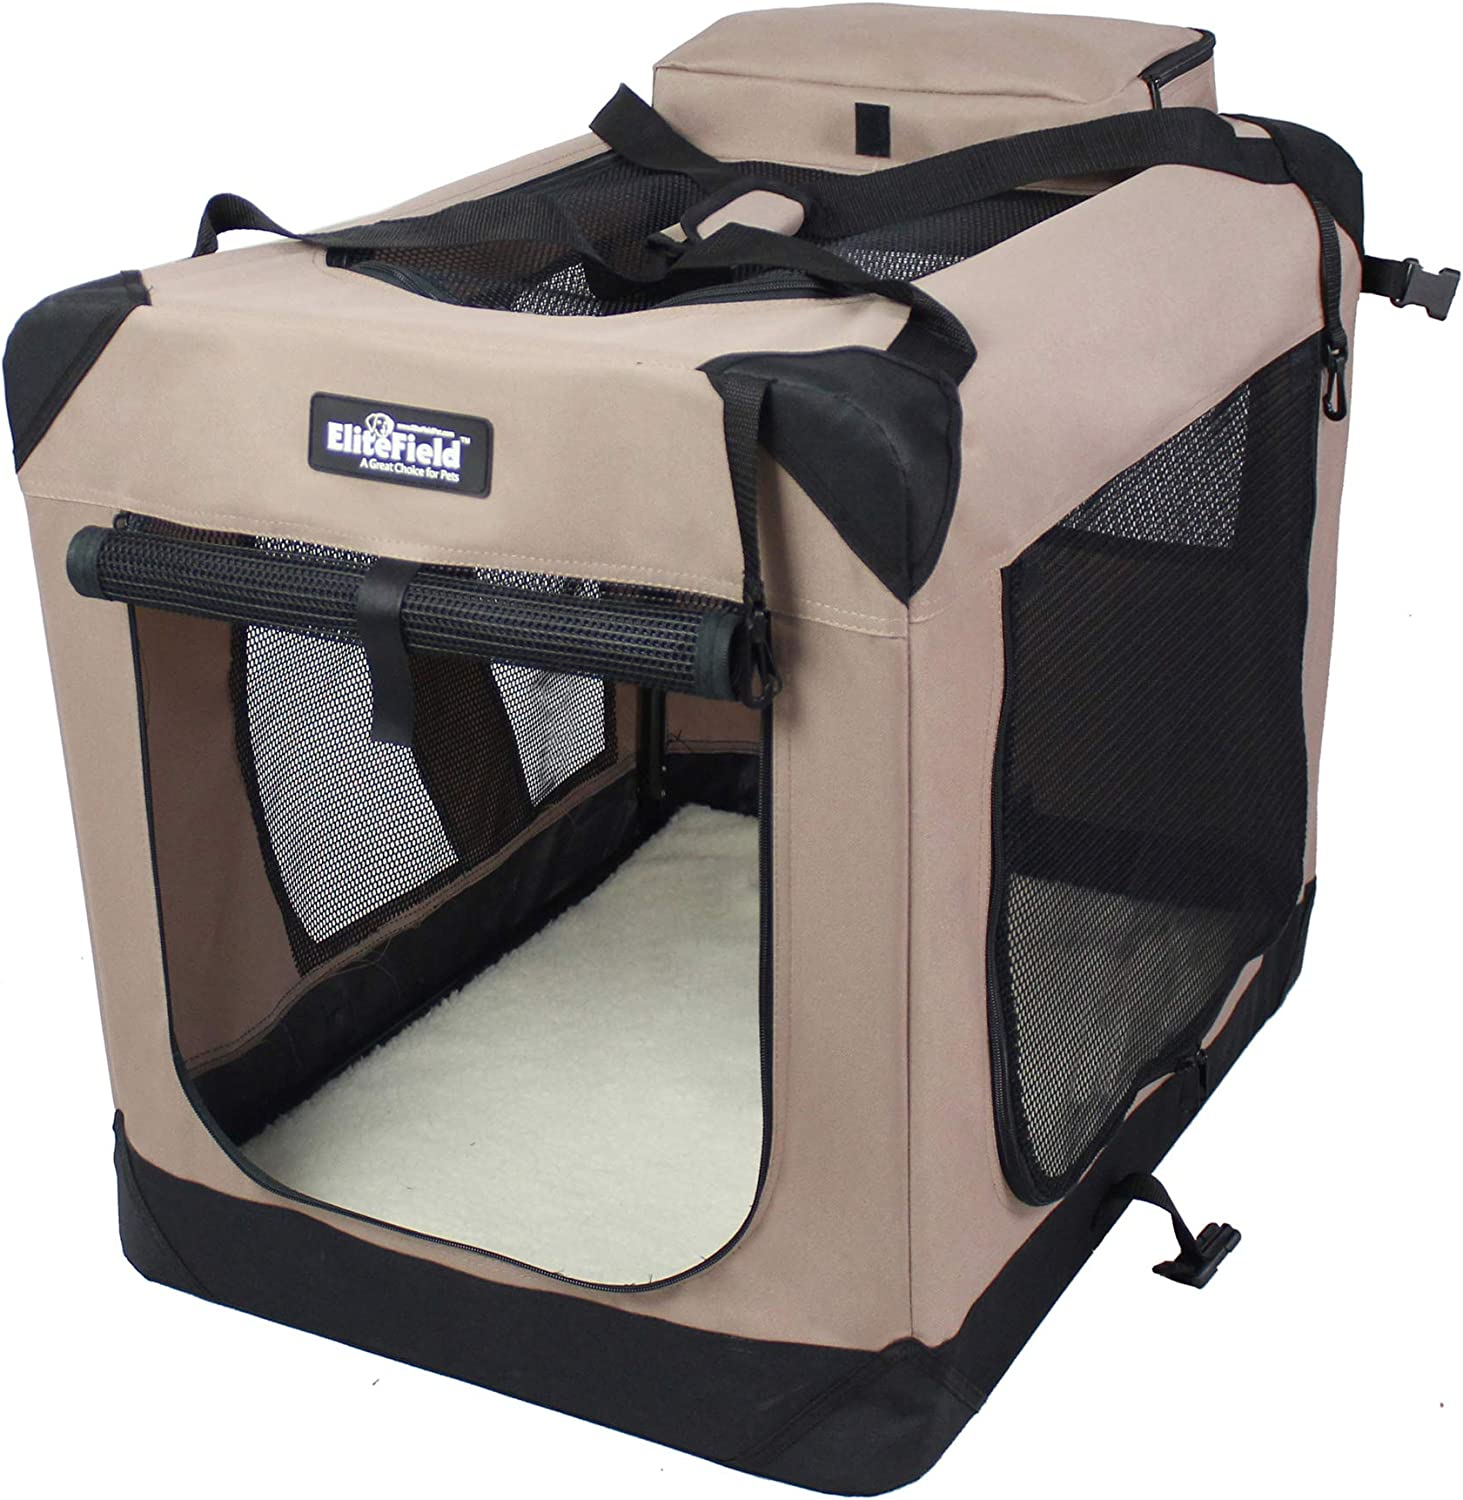 "EliteField 3-Door Folding Soft Dog Crate, Indoor & Outdoor Pet Home, Multiple Sizes and Colors Available (24"" L x 18"" W x 21"" H, Khaki)"